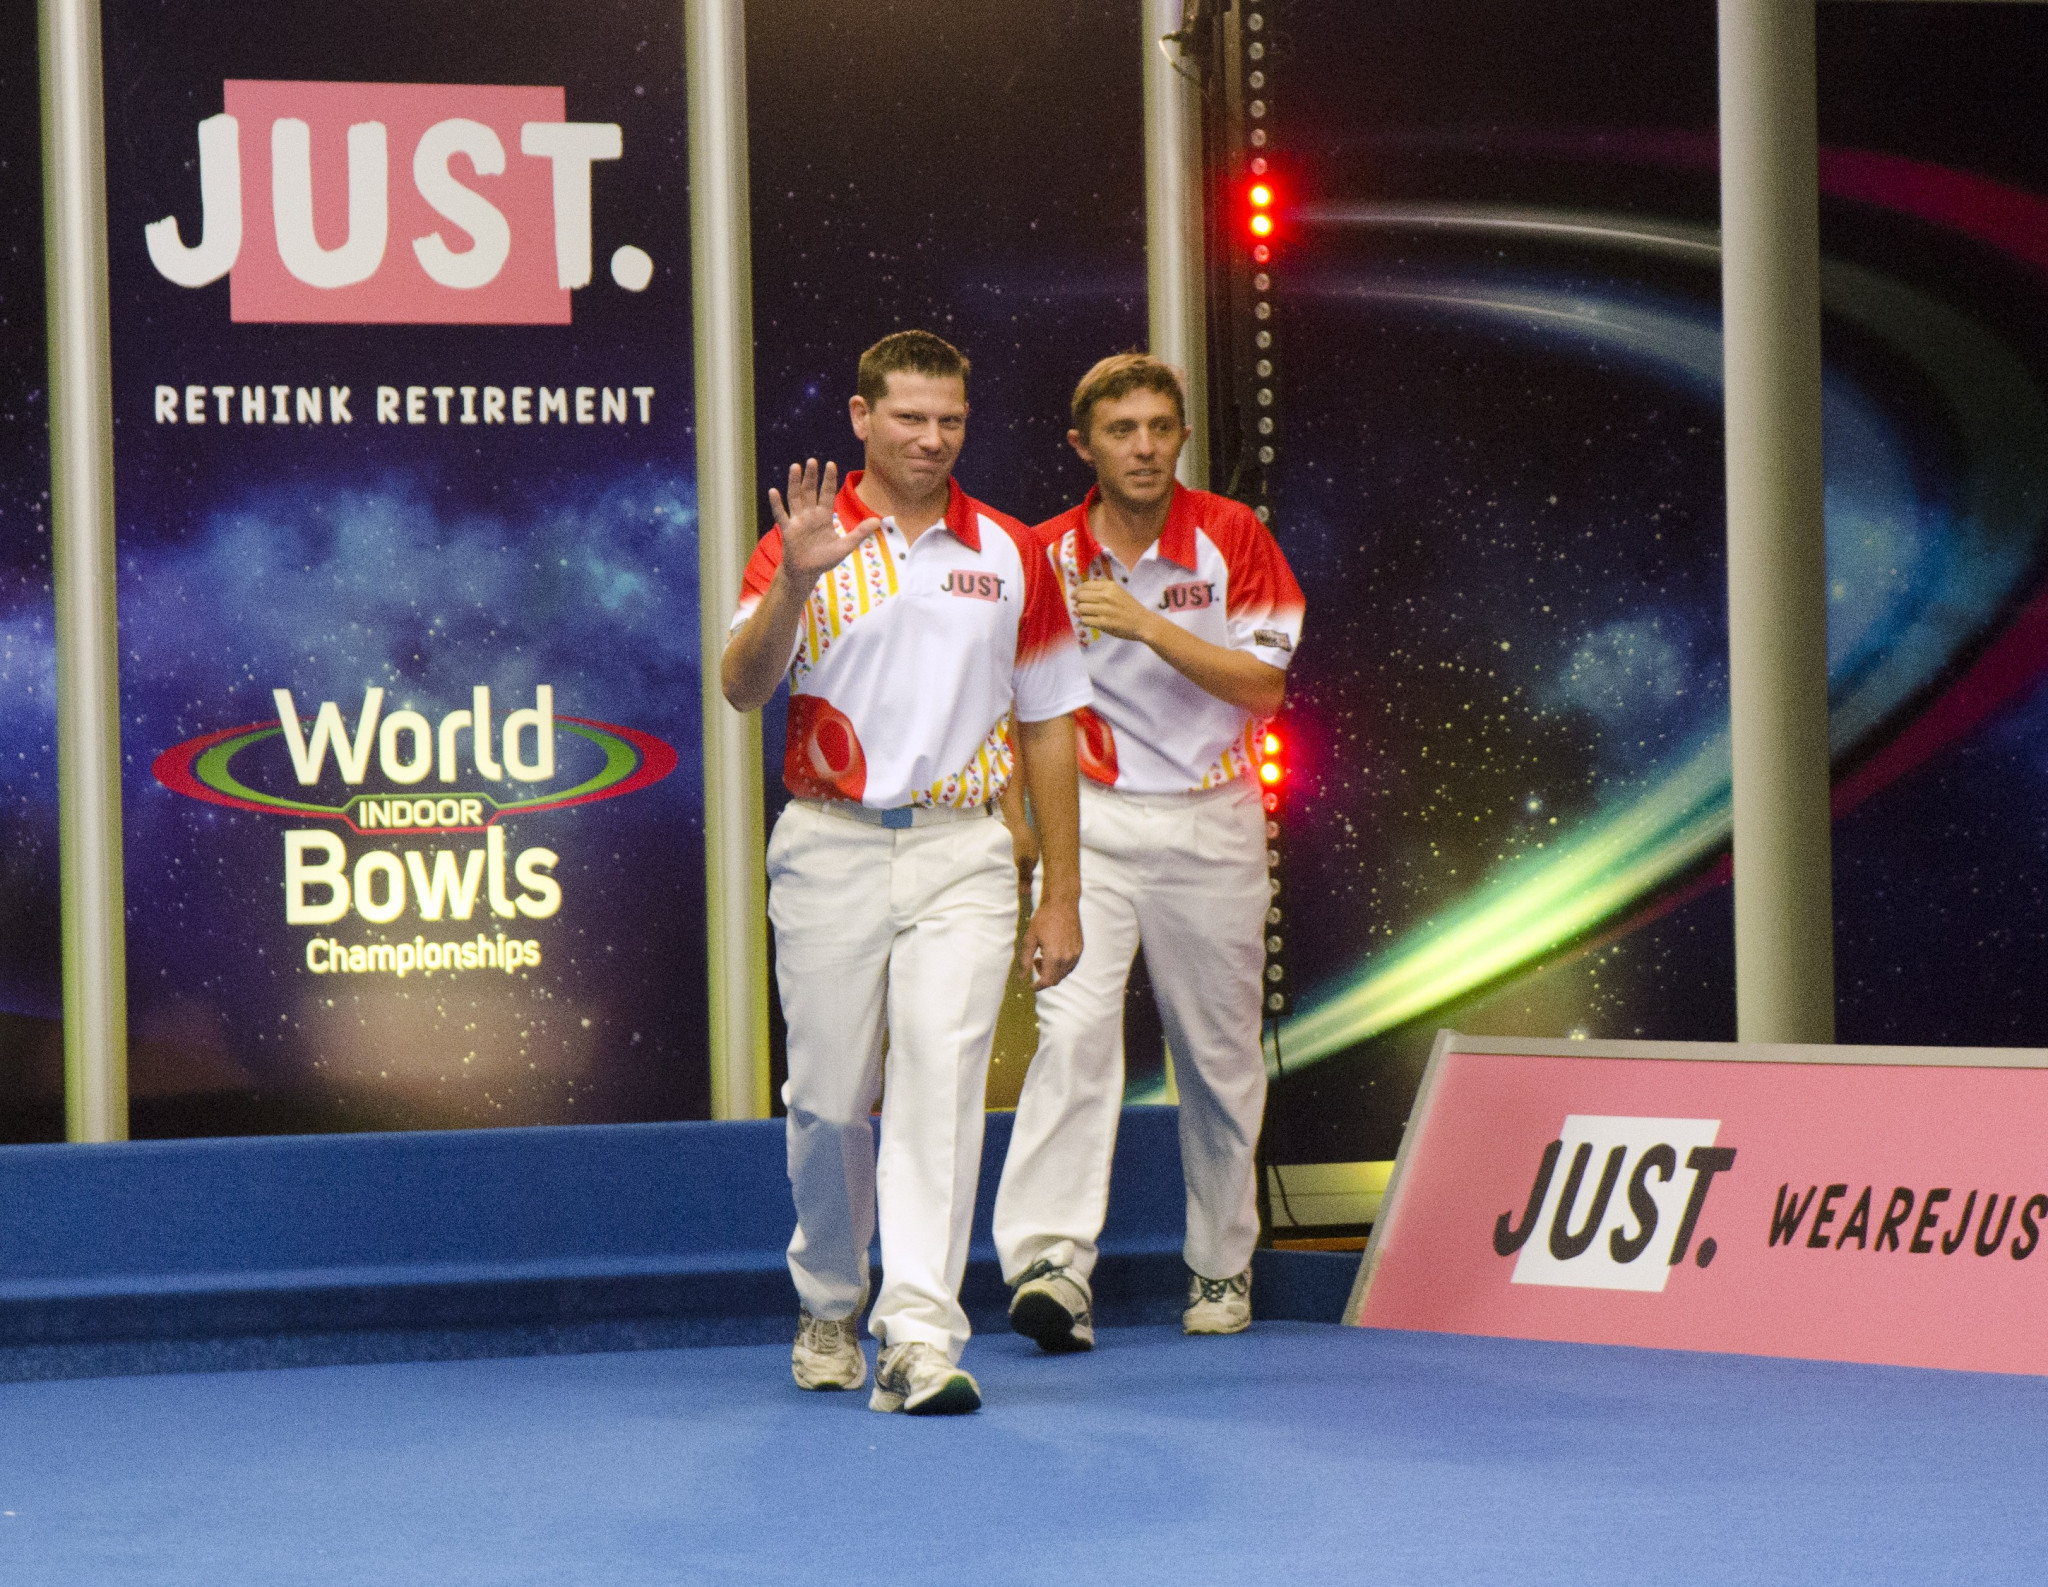 Australian duo Healey and Walker victorious at the 2018 World Indoor Bowls Championships